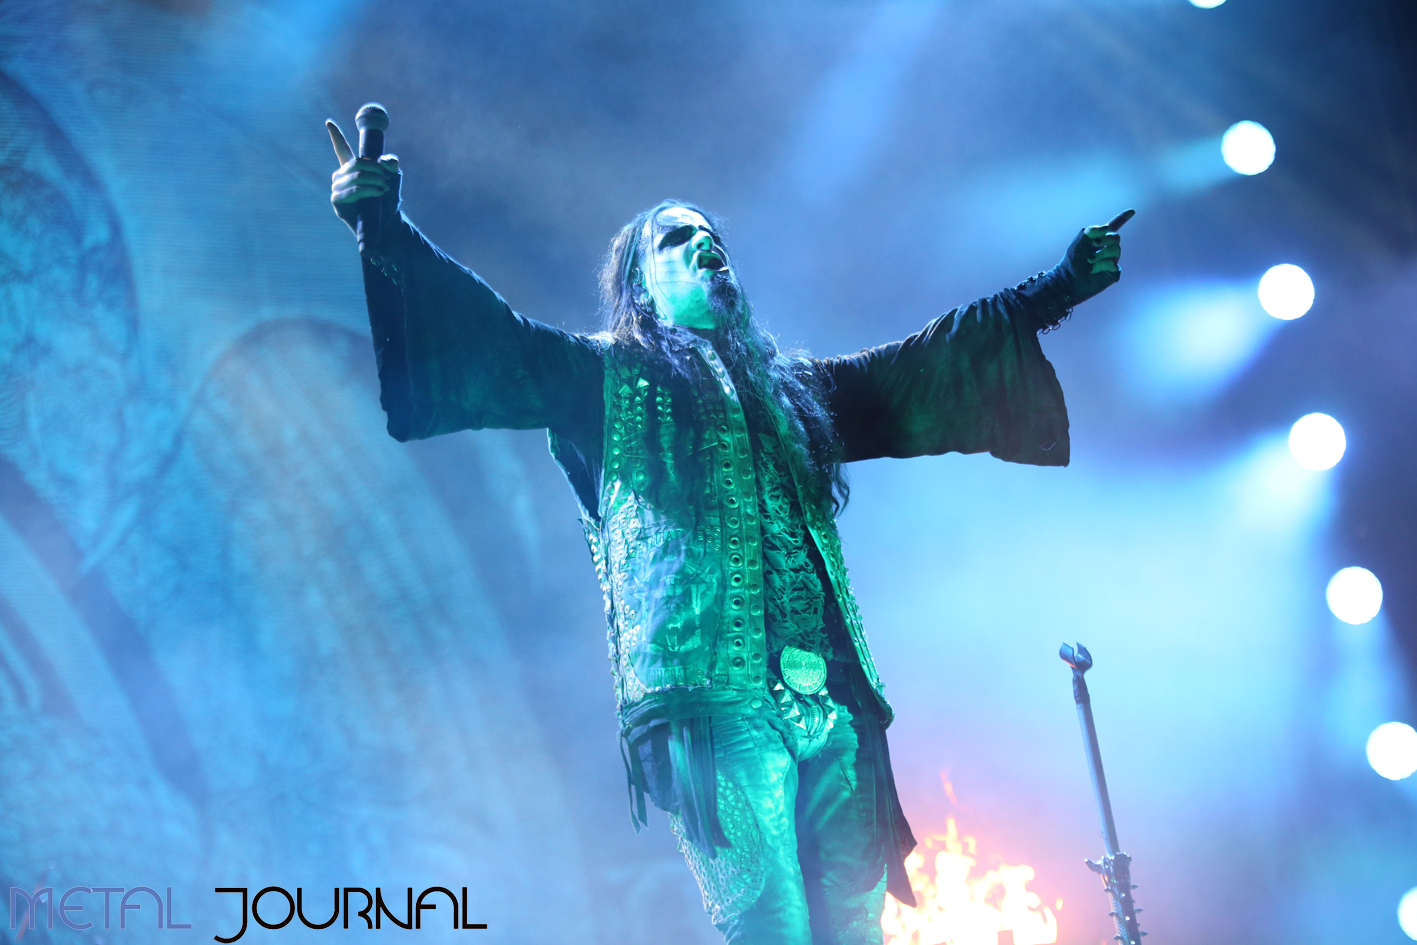 dimmu borgir rock fest 18 - metal journal pic 2